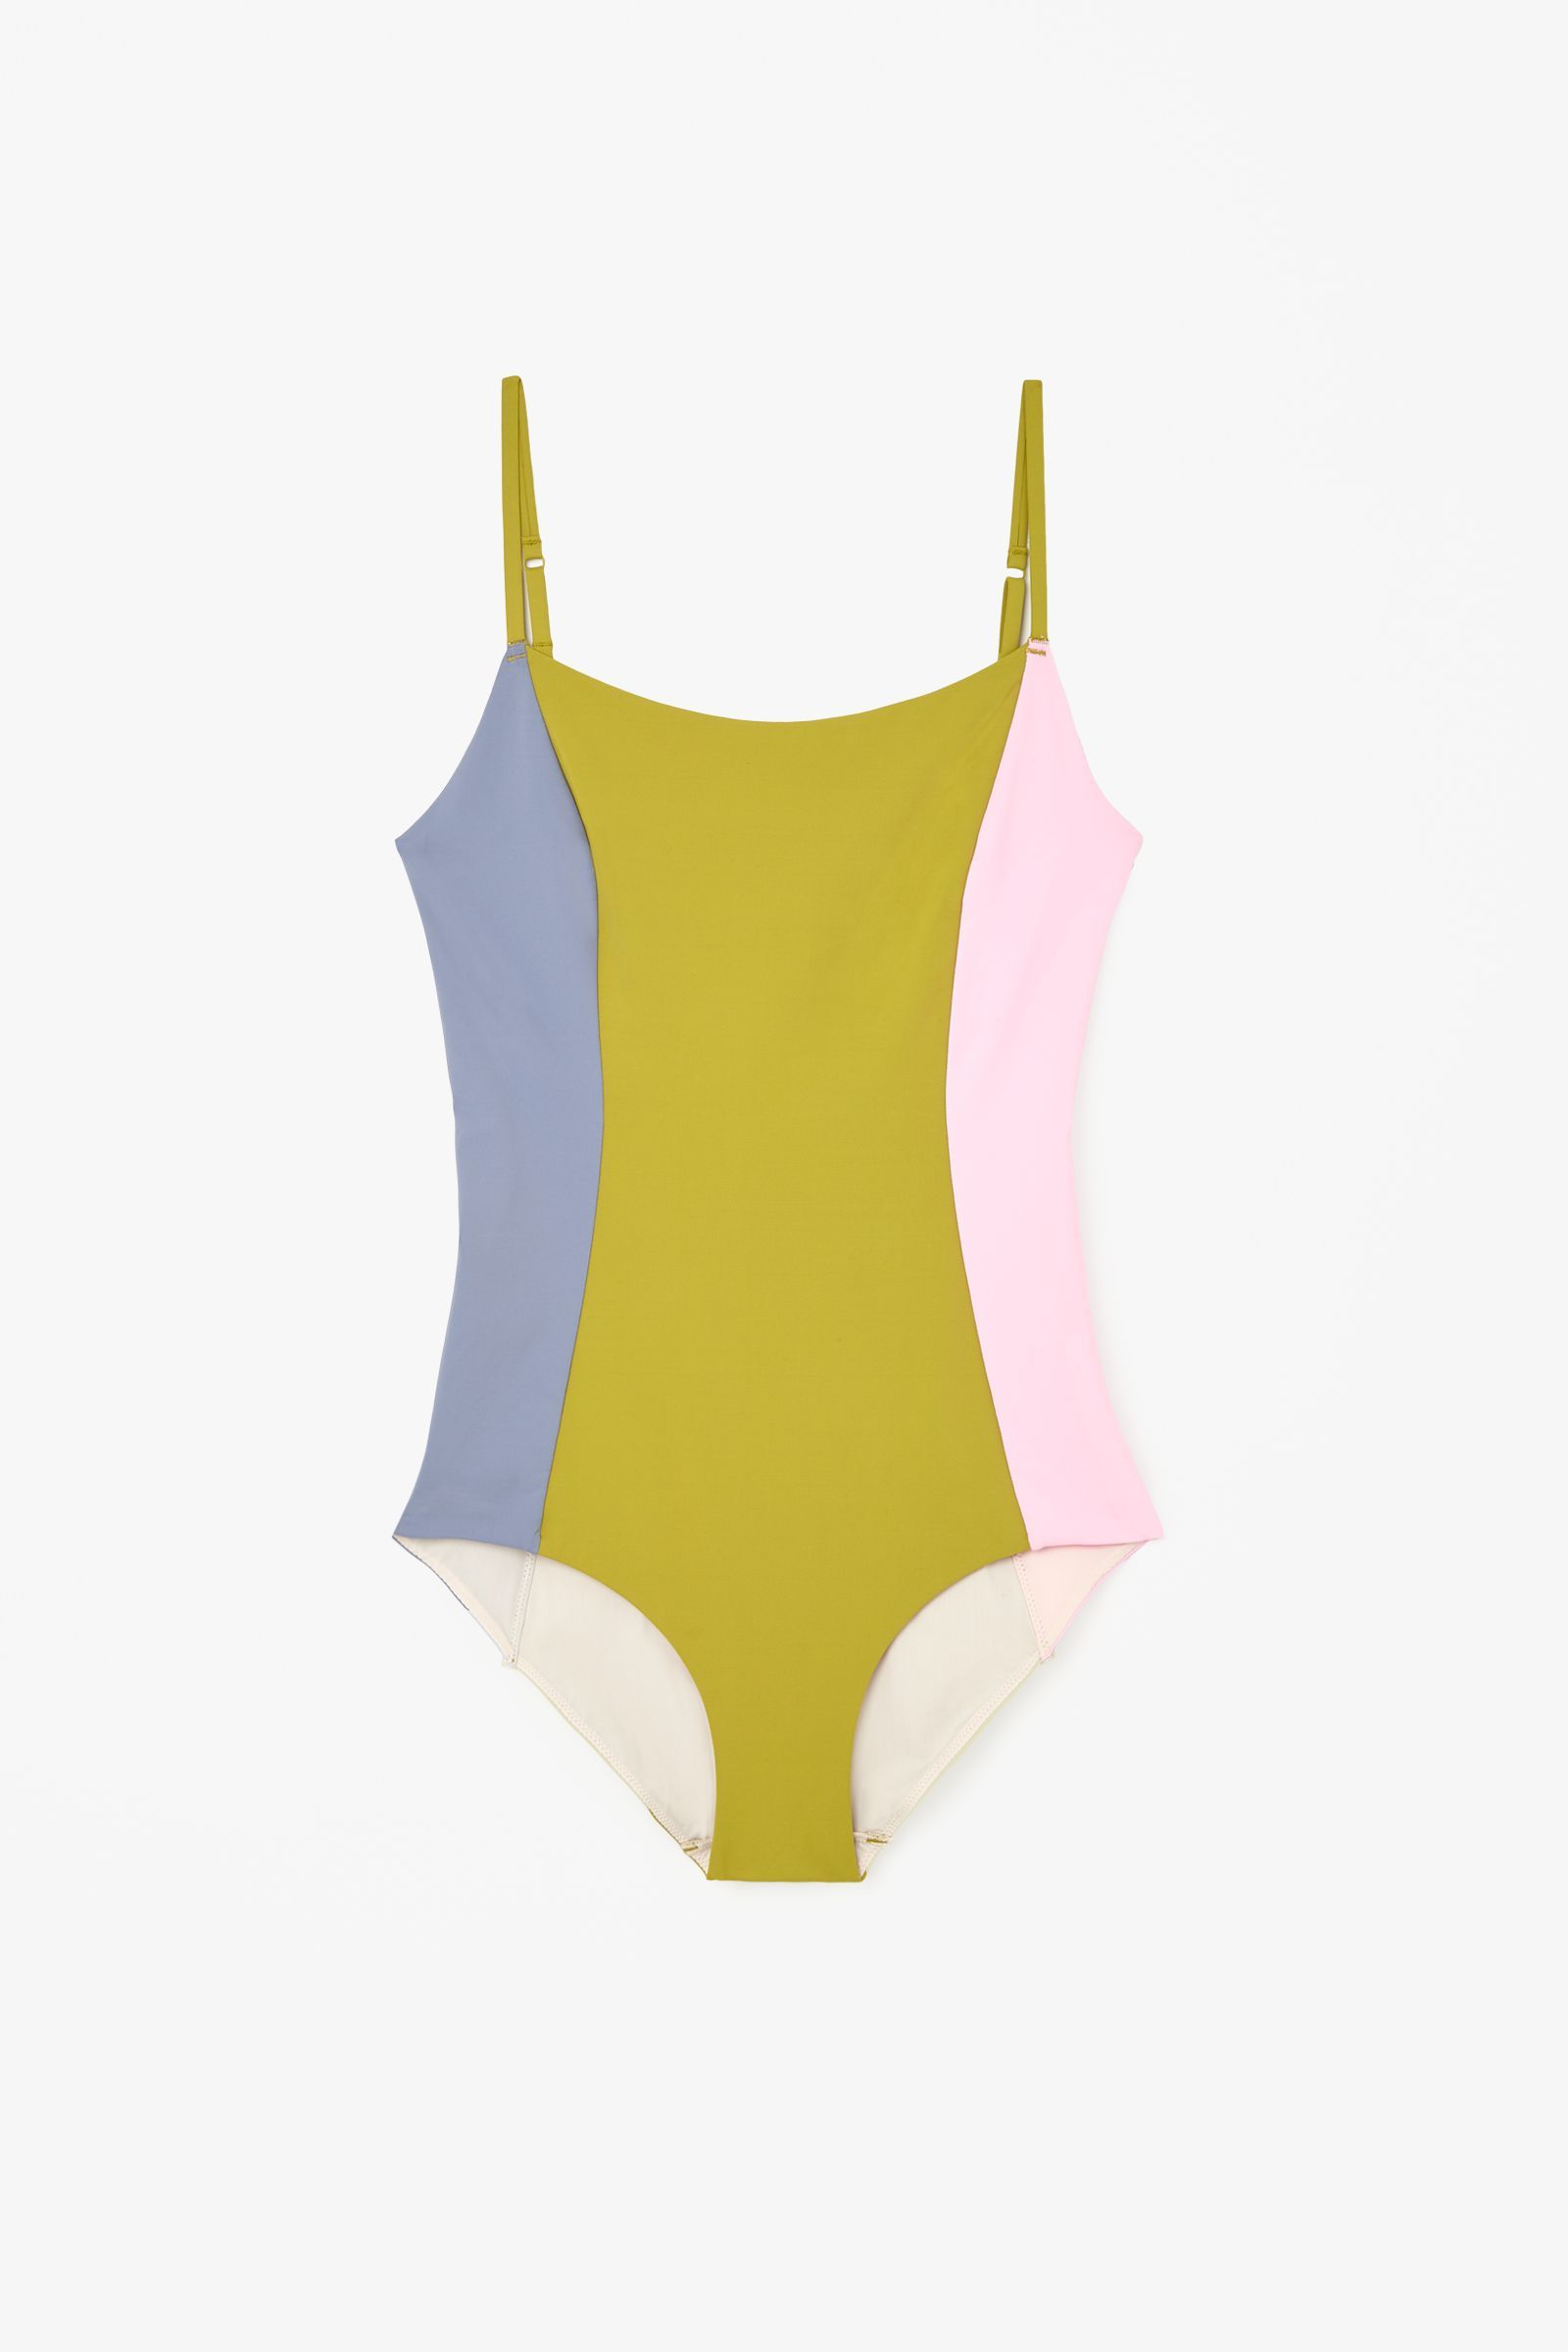 "<strong>COS </strong>swimsuit, $69, <a target=""_blank"" href=""http://www.cosstores.com/us/Women/Swimwear/Block-colour_swimsuit/46893-16633608.1#c-15133331"">cosstores.com</a>."